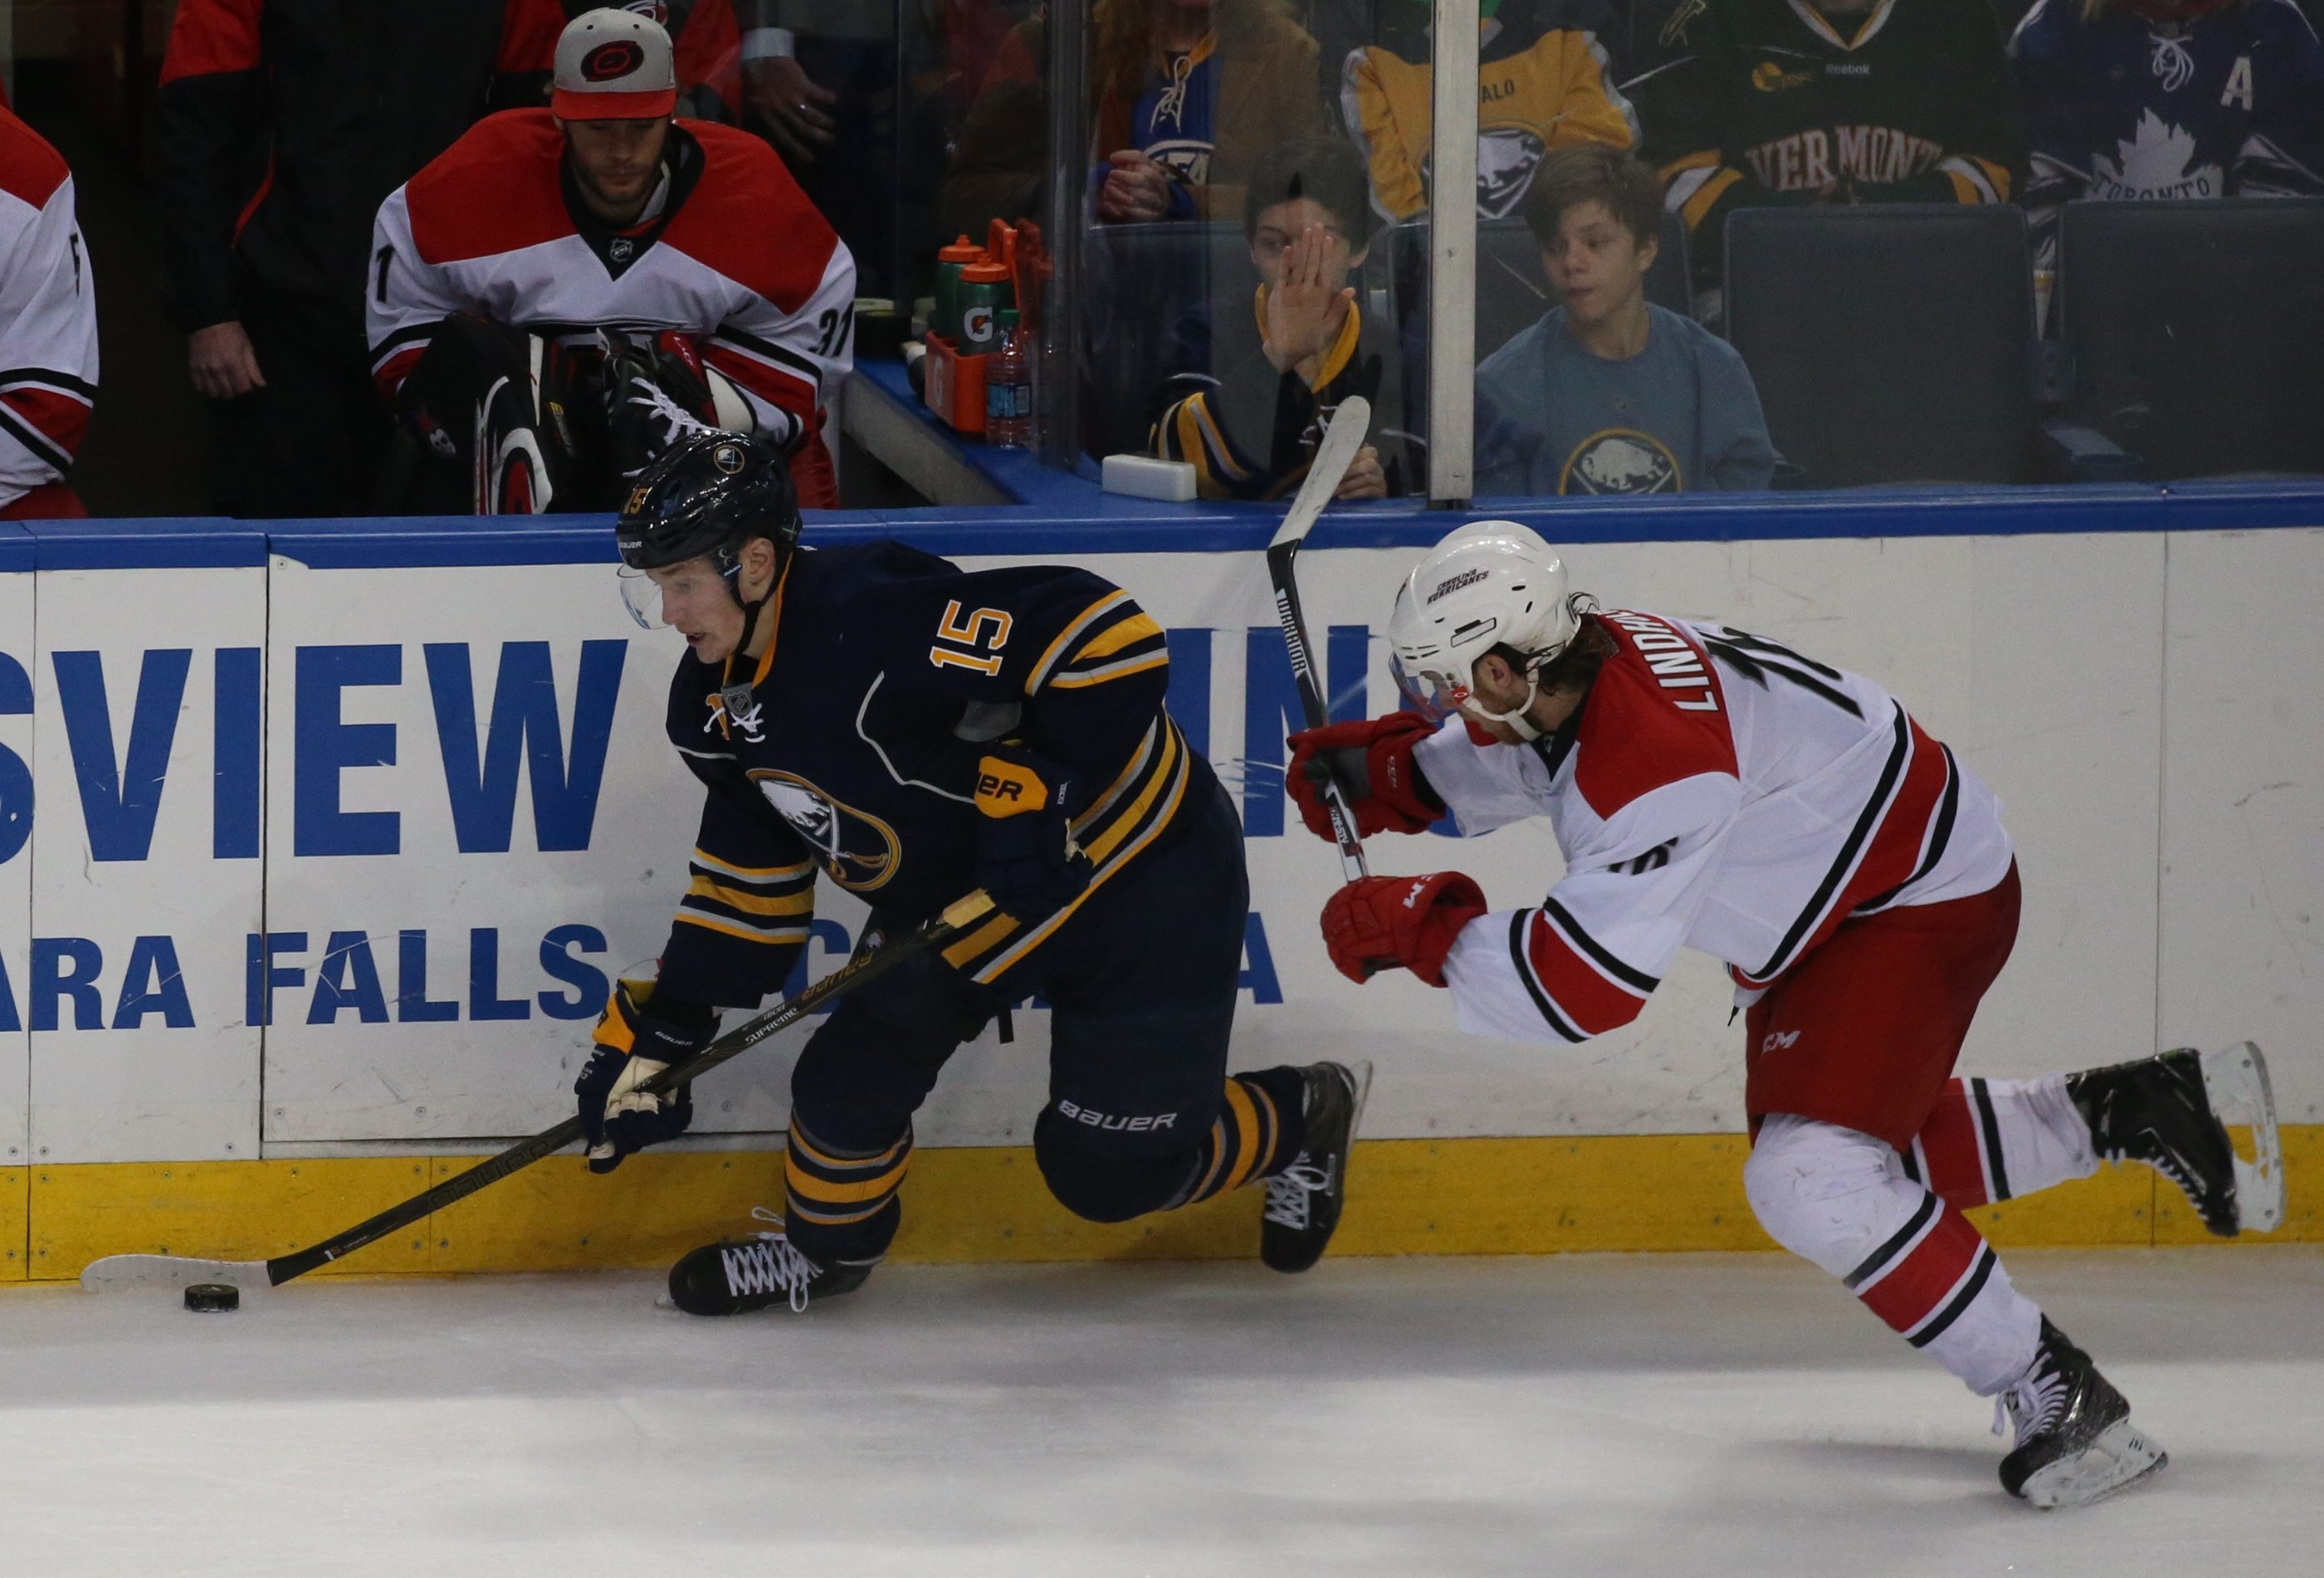 Buffalo Sabres' Jack Eichel (15) brings the puck up the boards as  Carolina Hurricanes' Elias Lindholm (16) checks from behind in third period action at  First Niagara Center, Buffalo, N.Y., on  Saturday,  March 12, 2016.Sabres 3, Hurricanes 2, in overtime session of play. (John Hickey/Buffalo News)